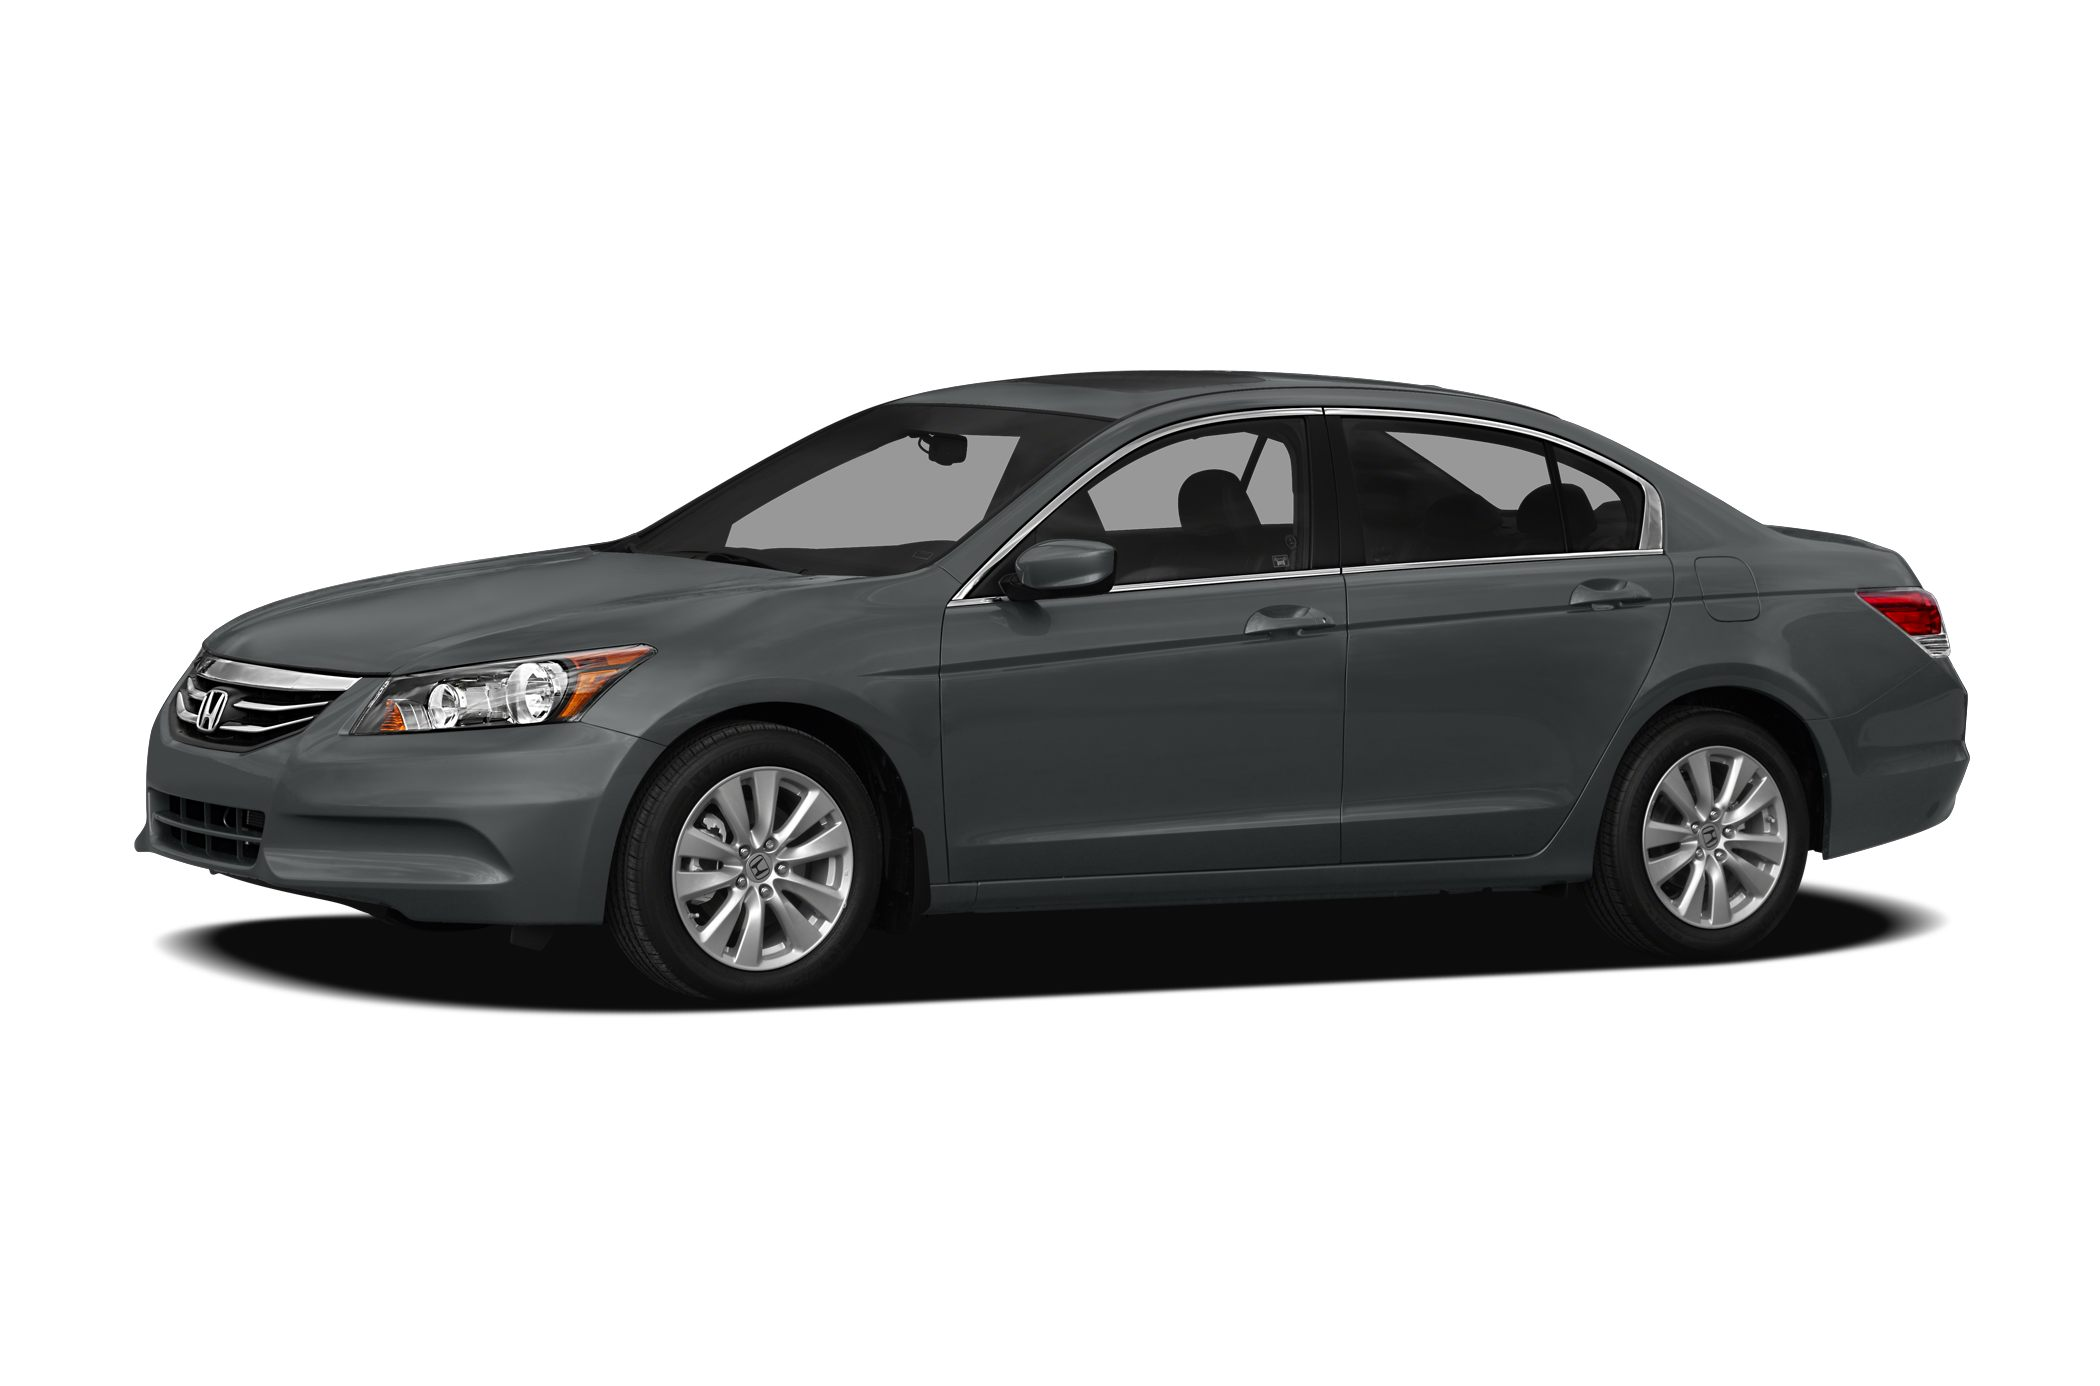 2012 Honda Accord 24 SE Visit Best Auto Group online at bronxbestautocom to see more pictures of